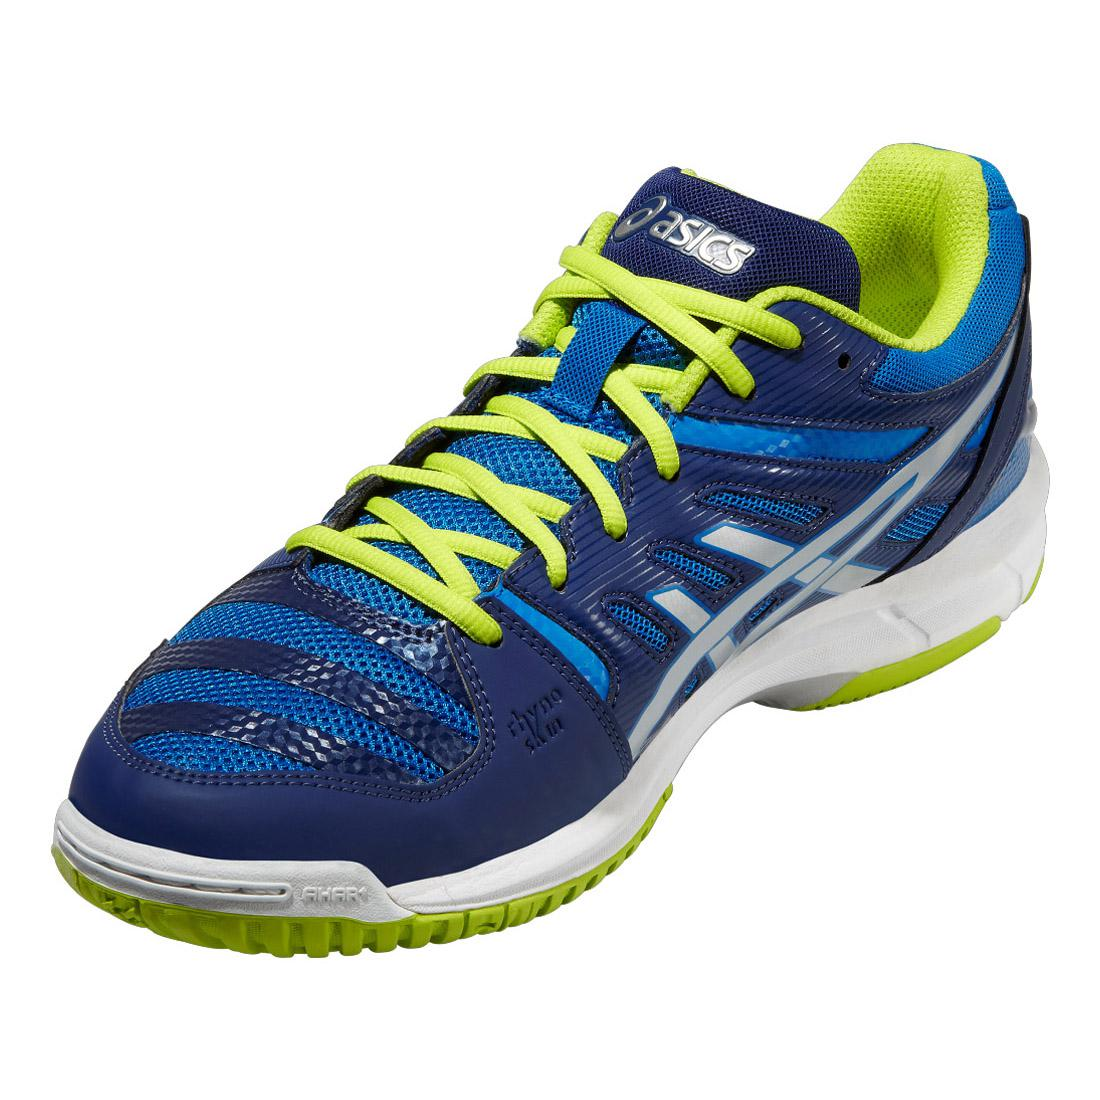 Asics Mens GEL-Beyond 4 Indoor Court Shoes - Electric Blue/Lime - Tennisnuts.com